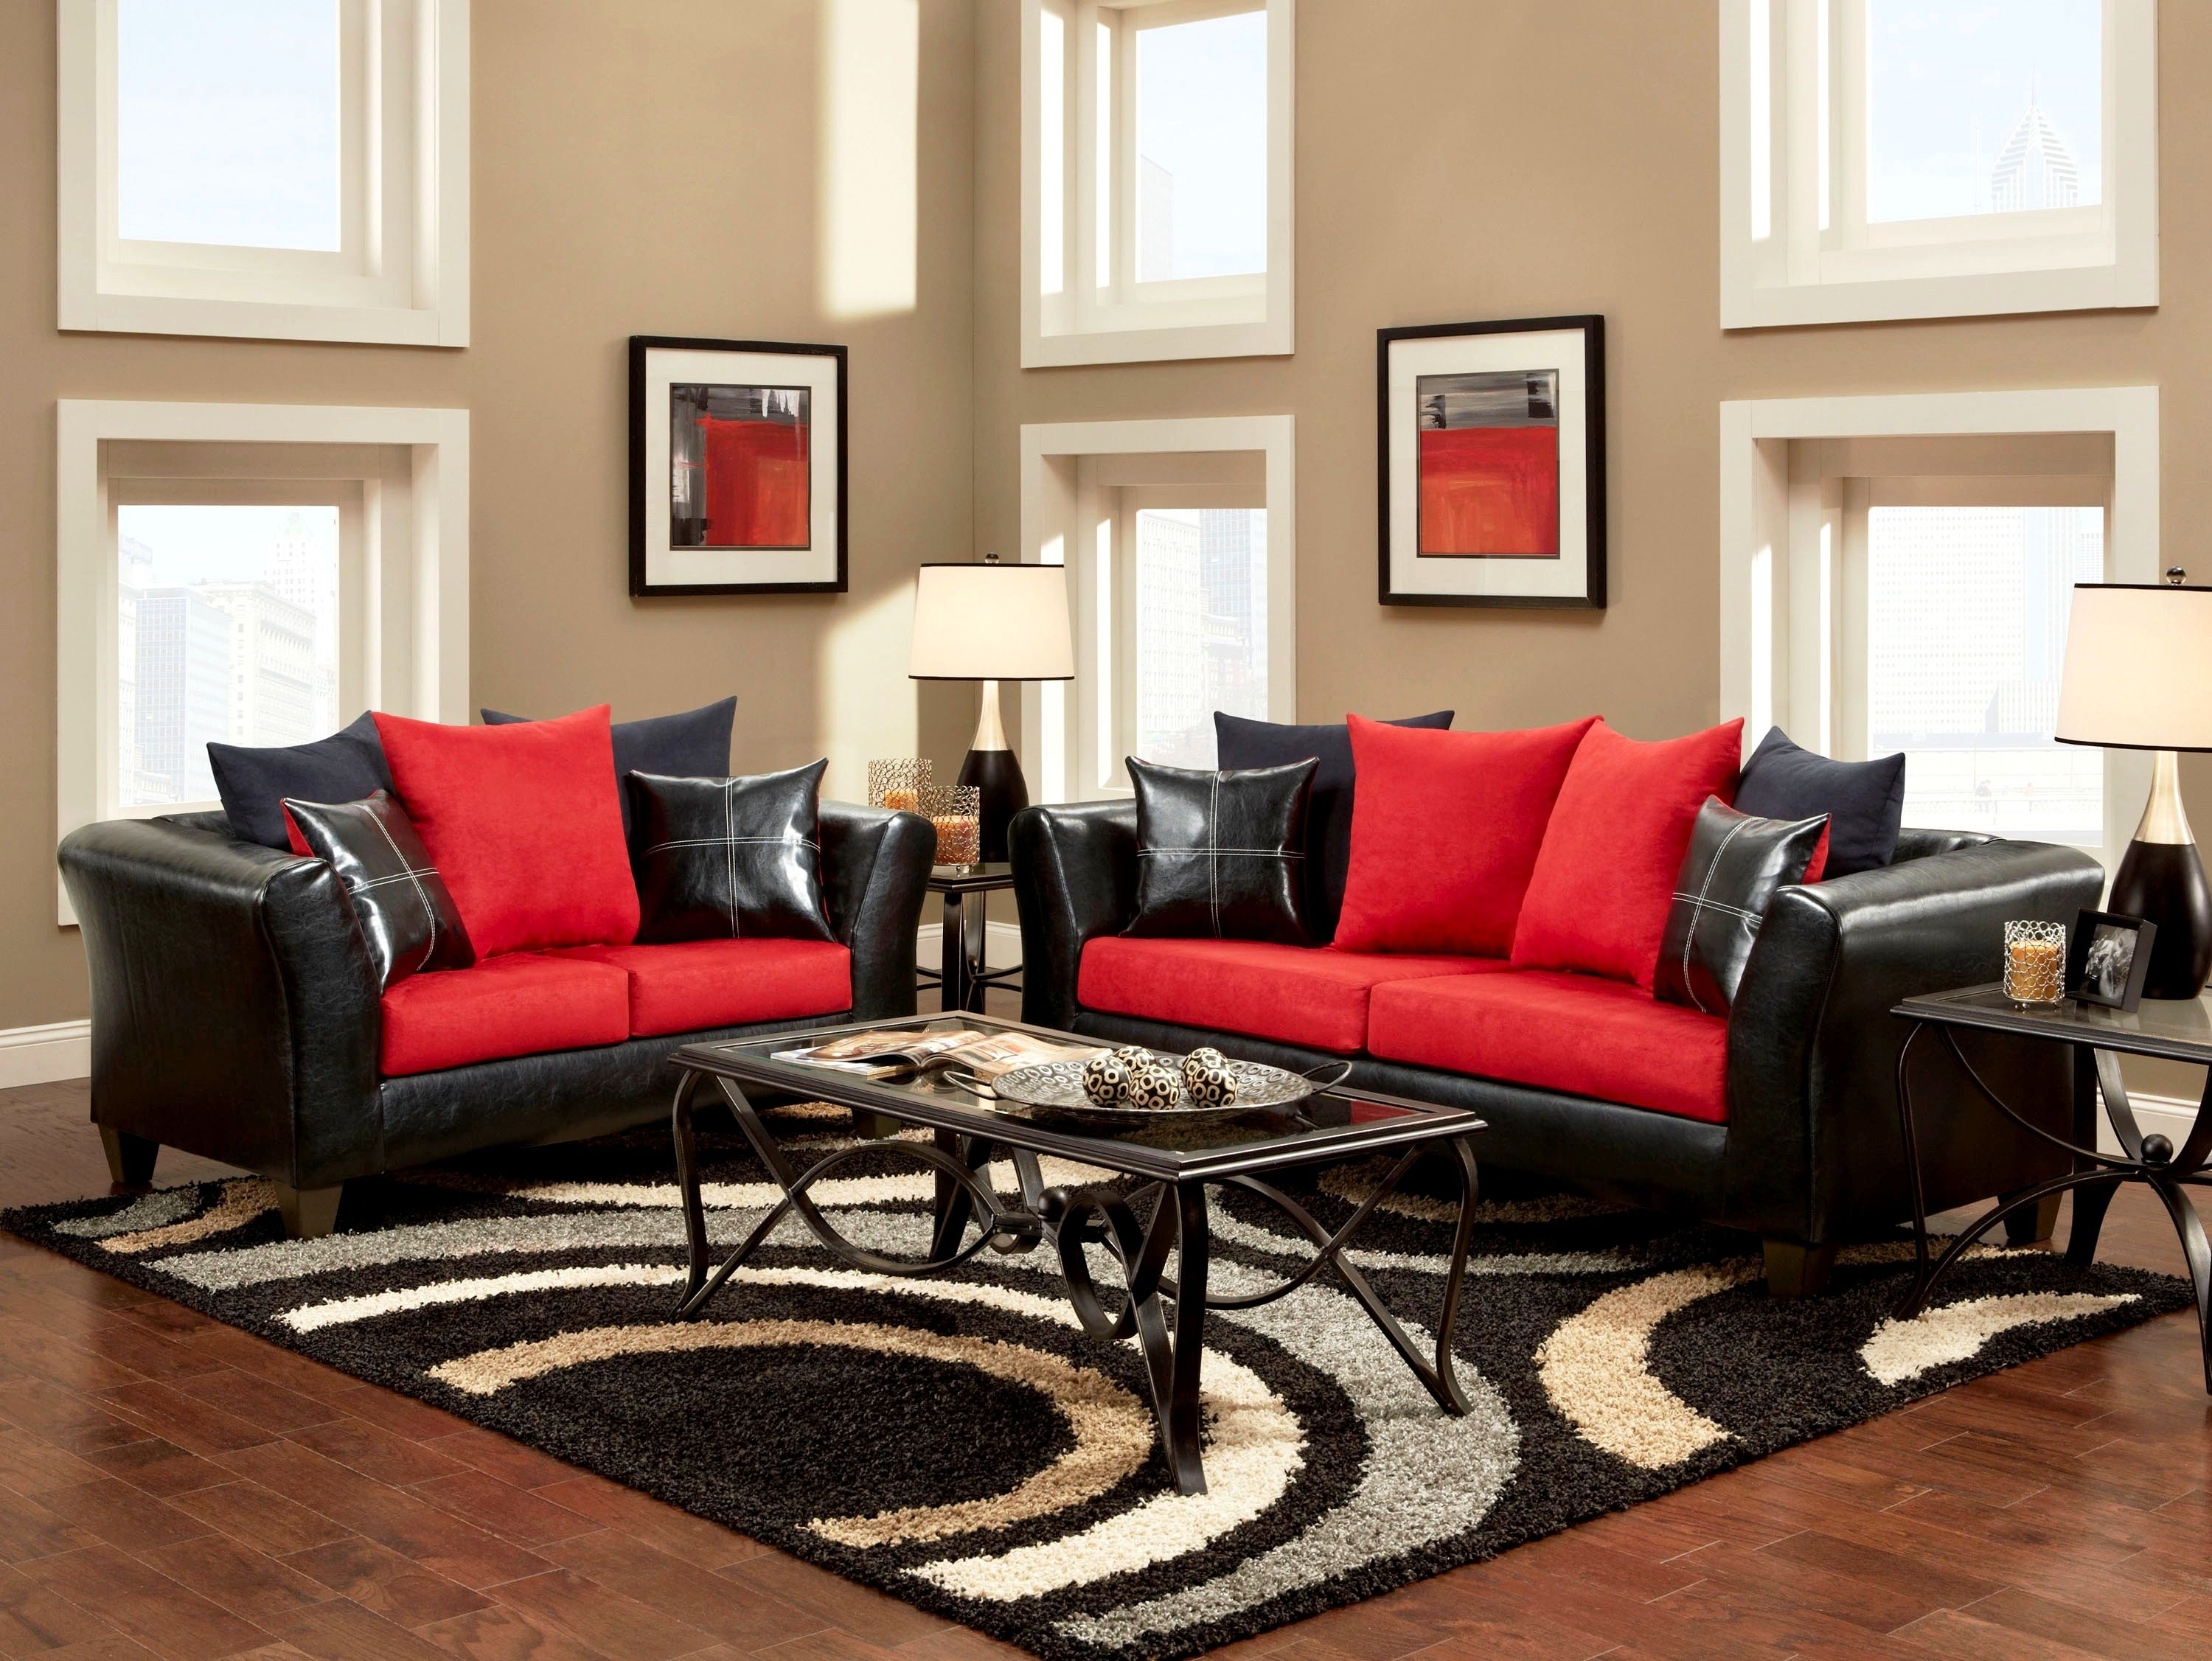 Living RoomComely Black And Red Living Room Pattern Rug